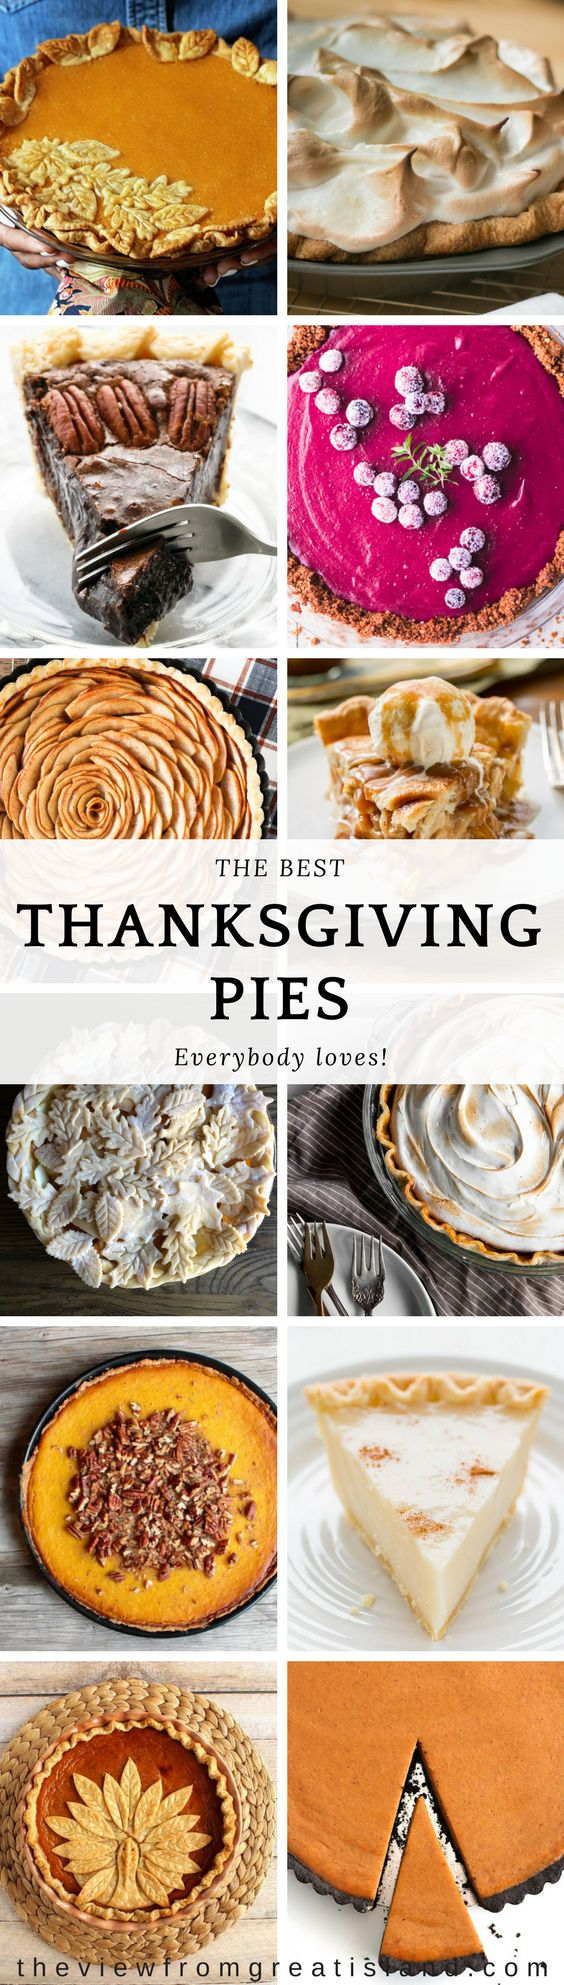 Collection of Thanksgiving Pies That Includes Absolutely Everything Folks Could Love